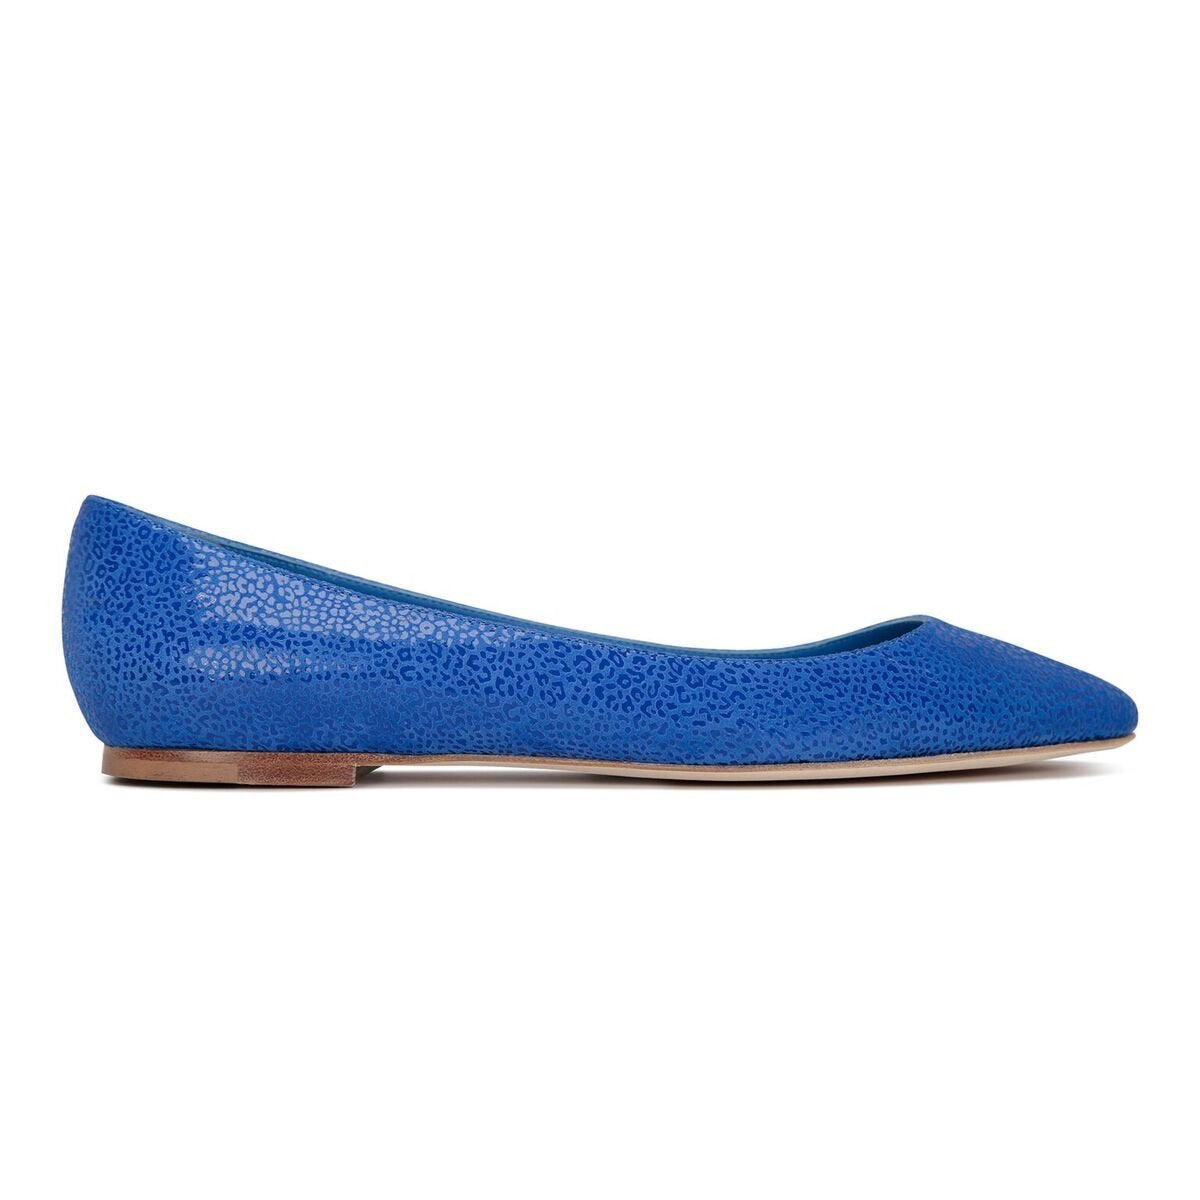 SIENA - Savannah Cobalt, VIAJIYU - Women's Hand Made Sustainable Luxury Shoes. Made in Italy. Made to Order.